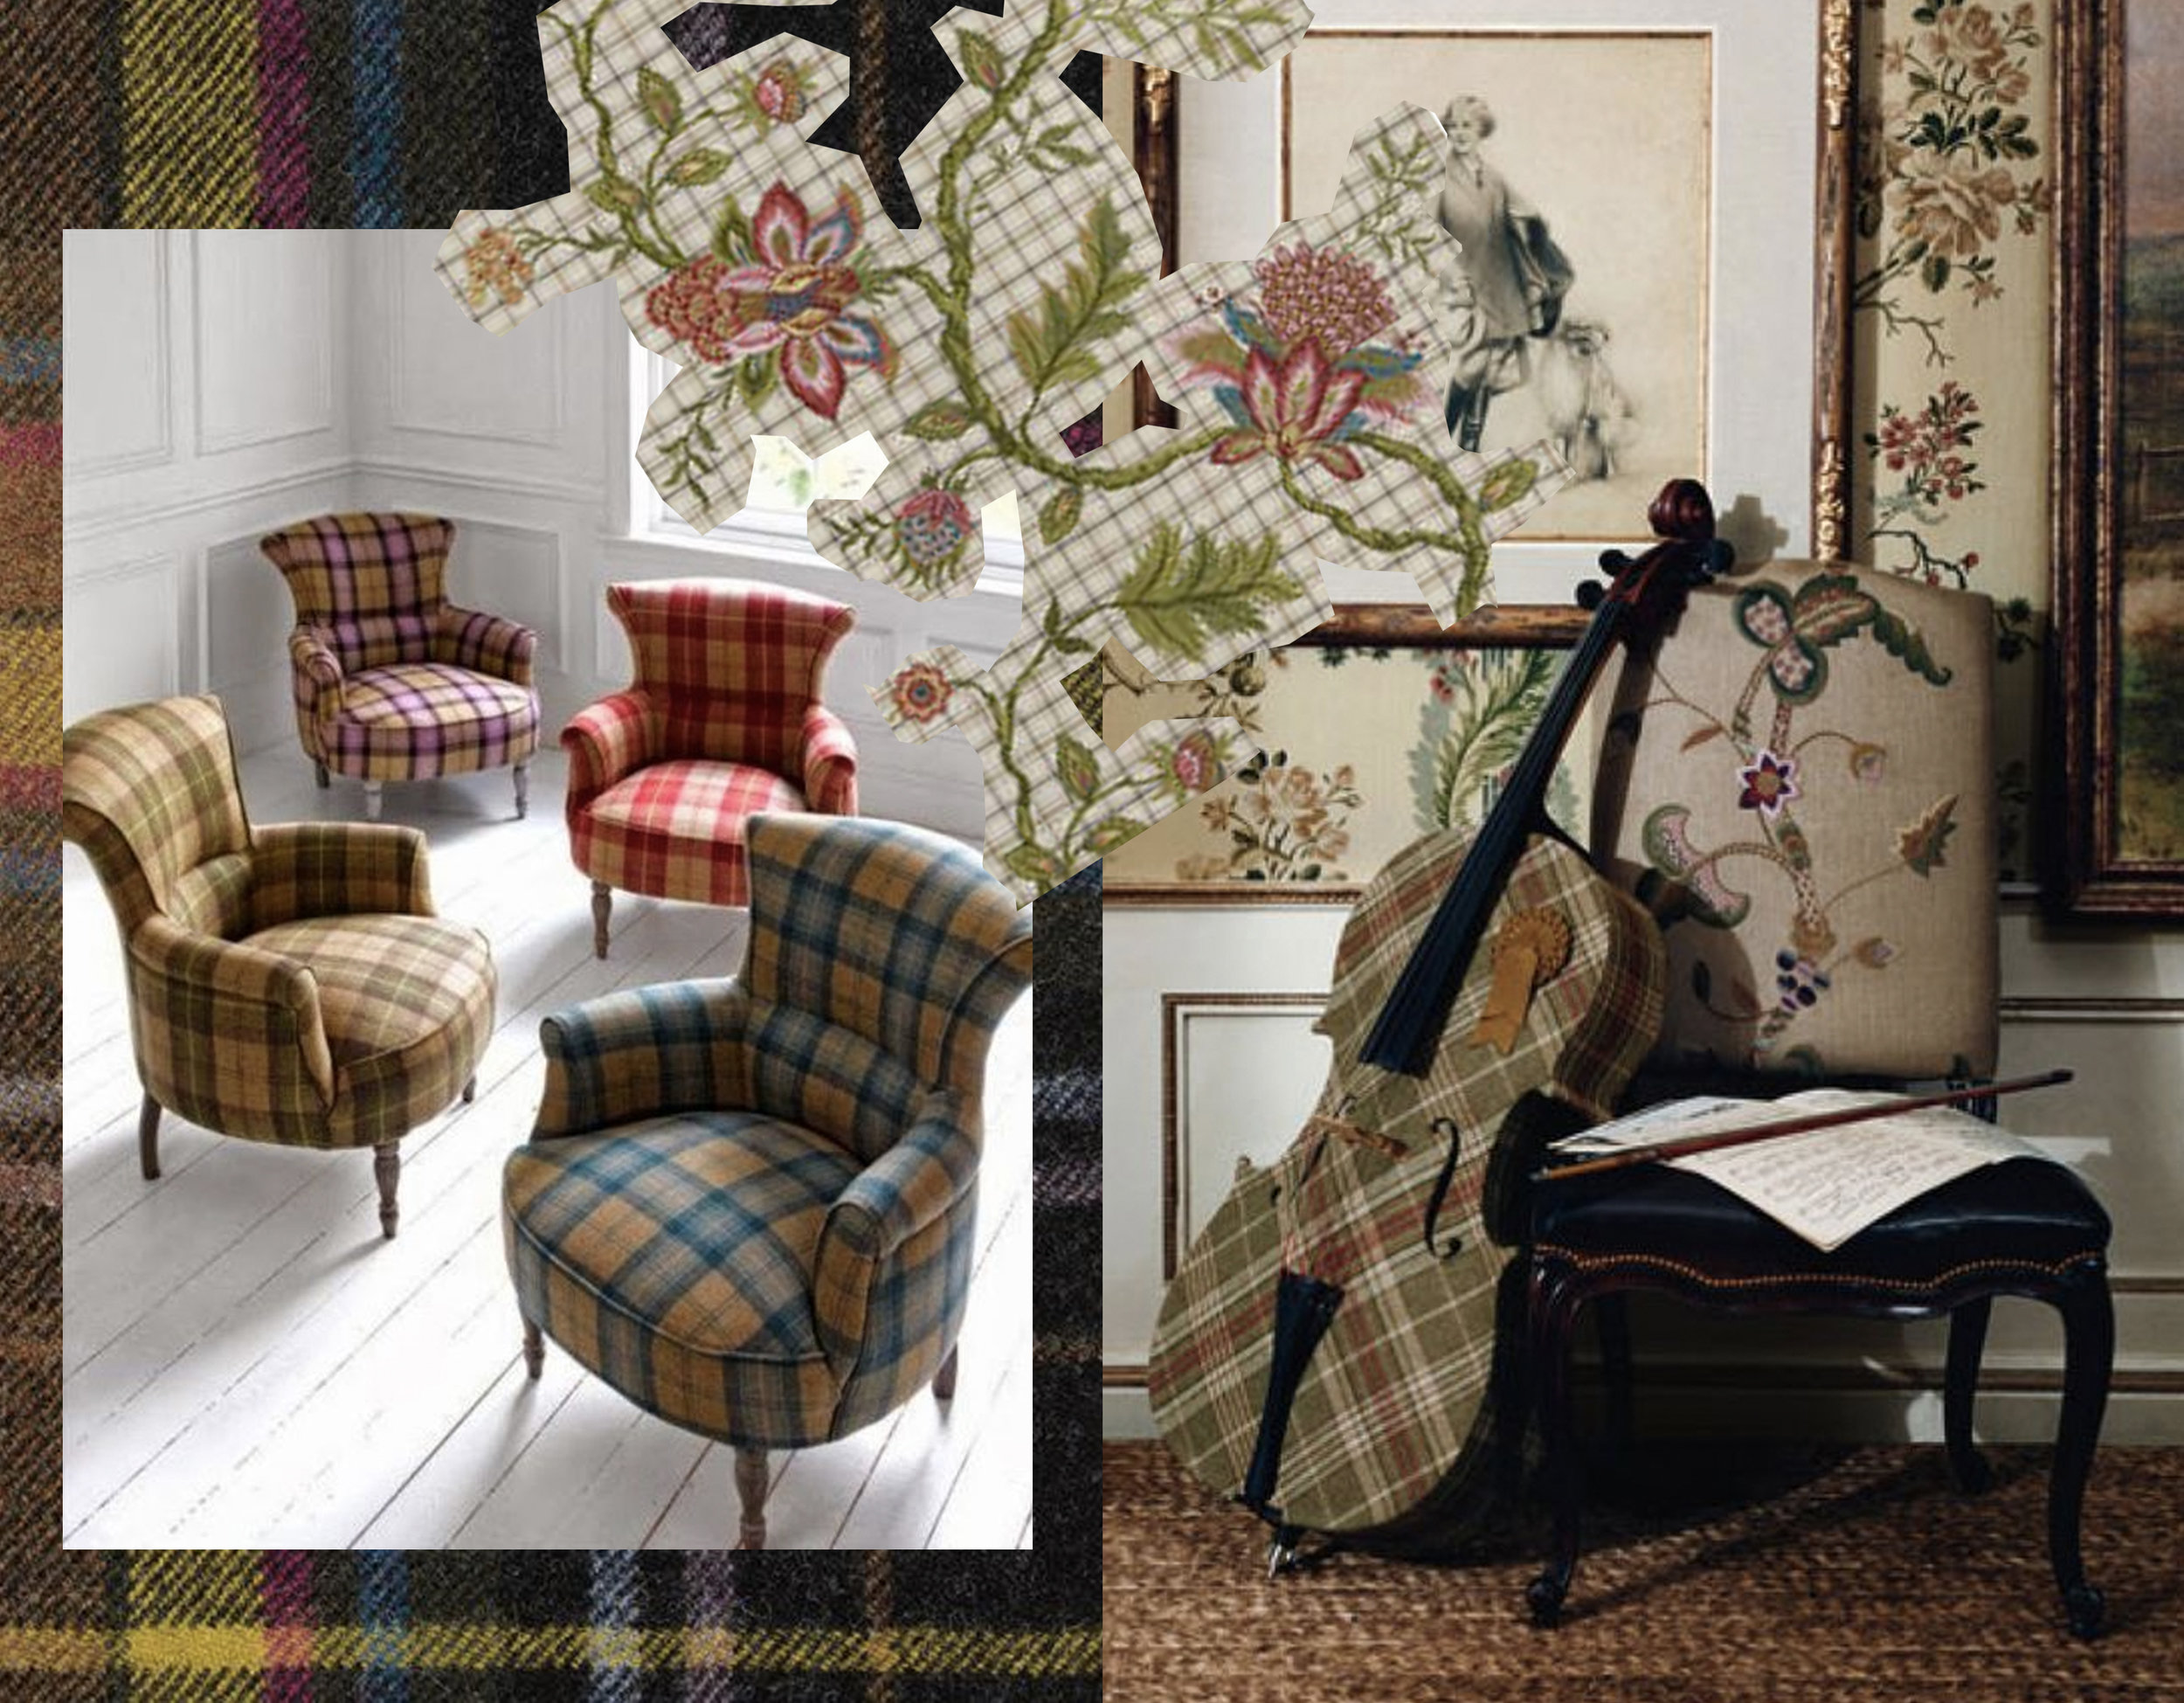 plaid fabric Paul Smith  Maharam  - interior with cello  Ralph Lauren  - embroidered fabric Rambouillet  Pierre Frey